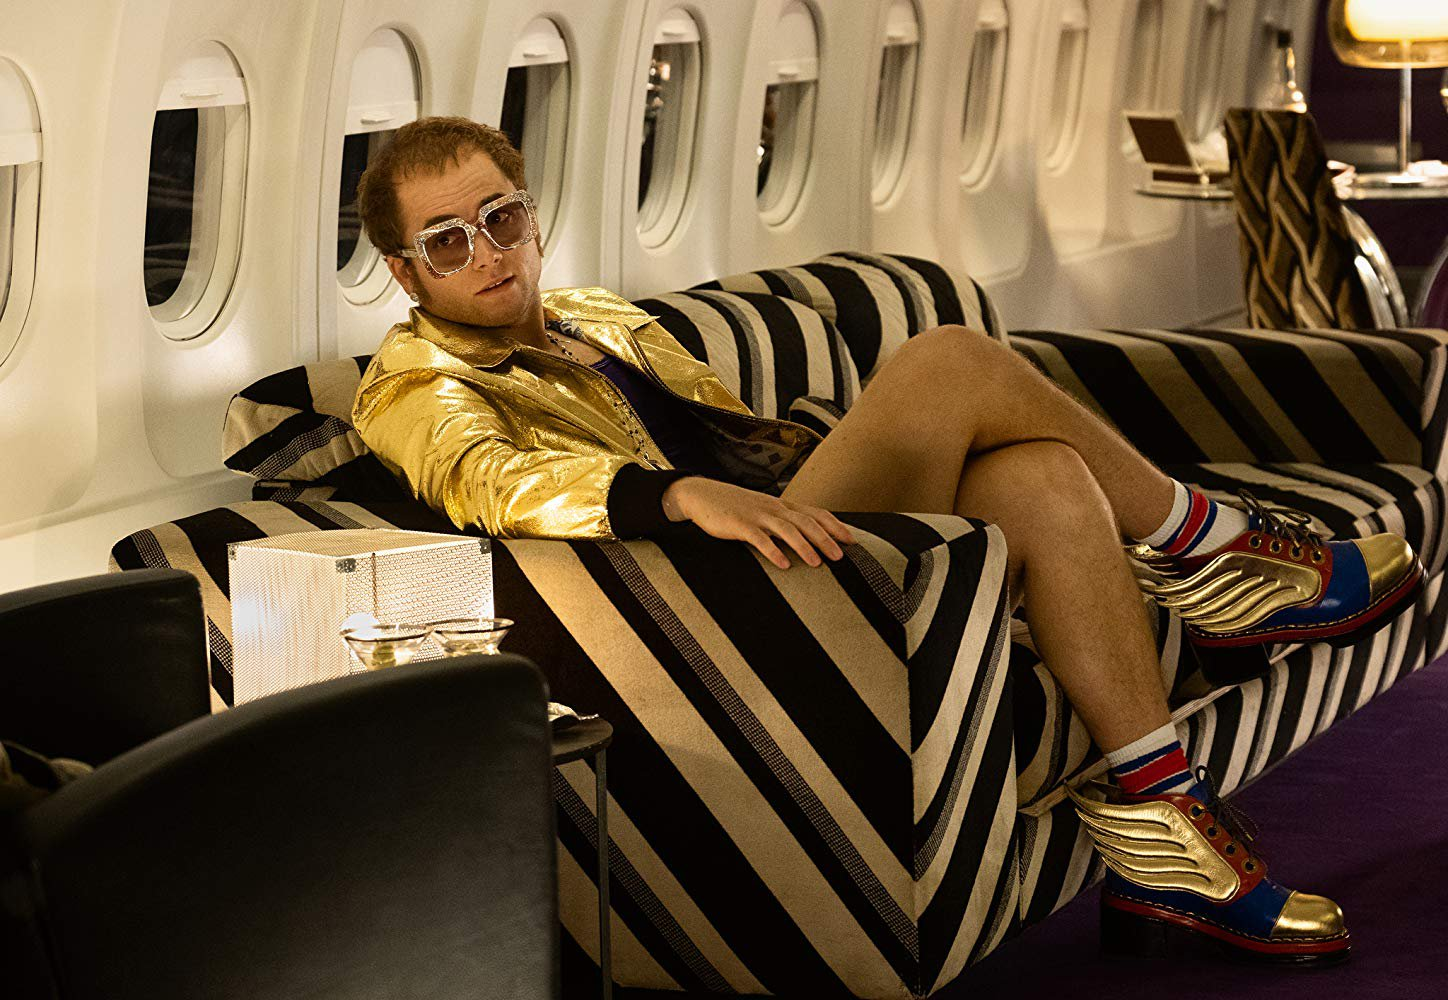 Taron Egerton reveals Rocketman opens with Elton John in confronting rehab scene